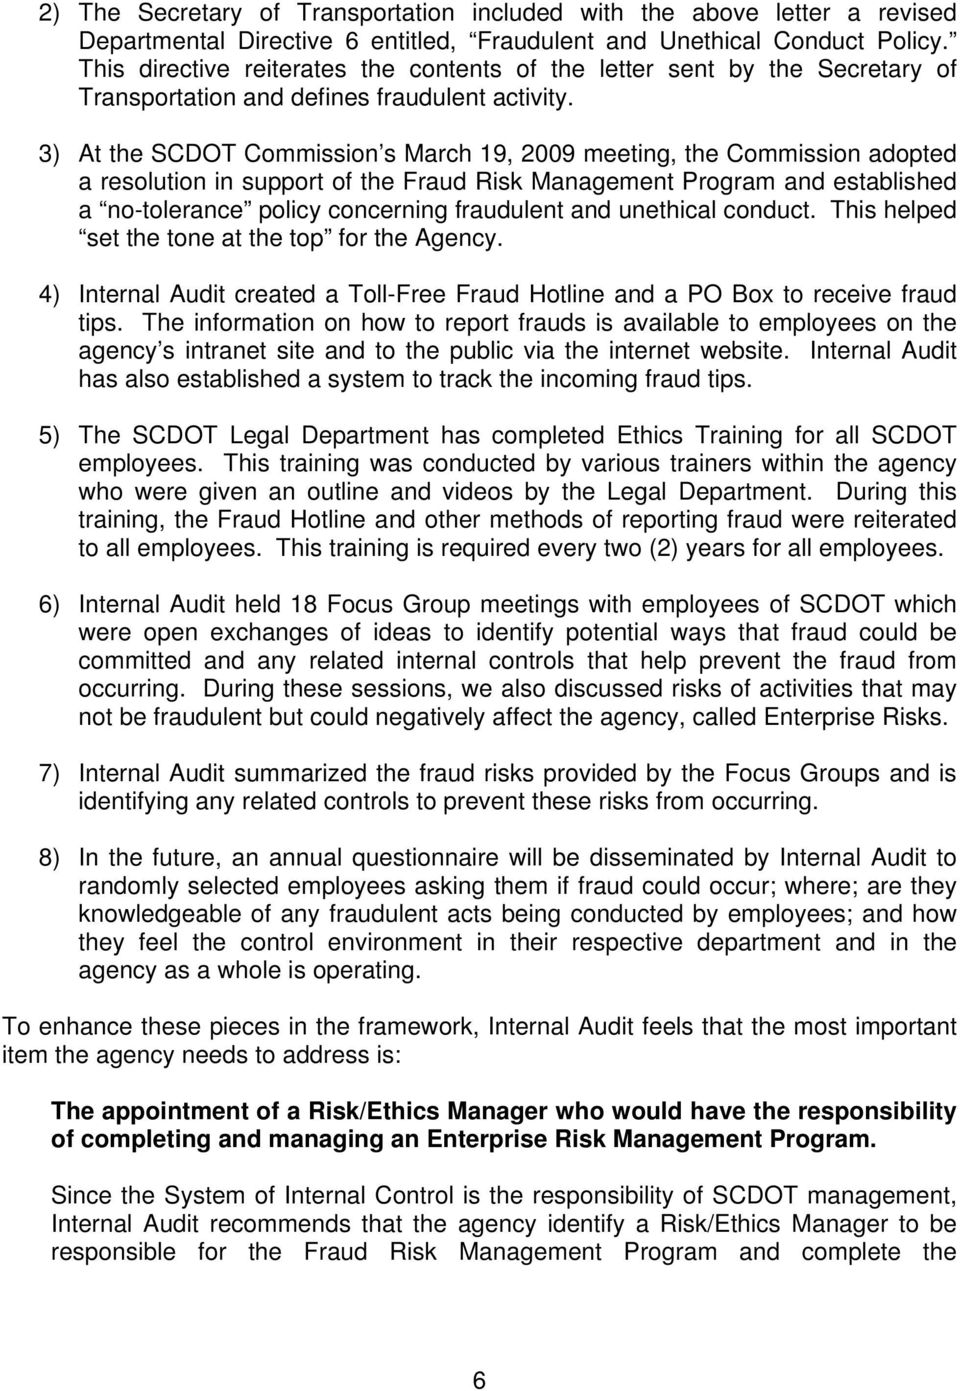 3) At the SCDOT Commission s March 19, 2009 meeting, the Commission adopted a resolution in support of the Fraud Risk Management Program and established a no-tolerance policy concerning fraudulent